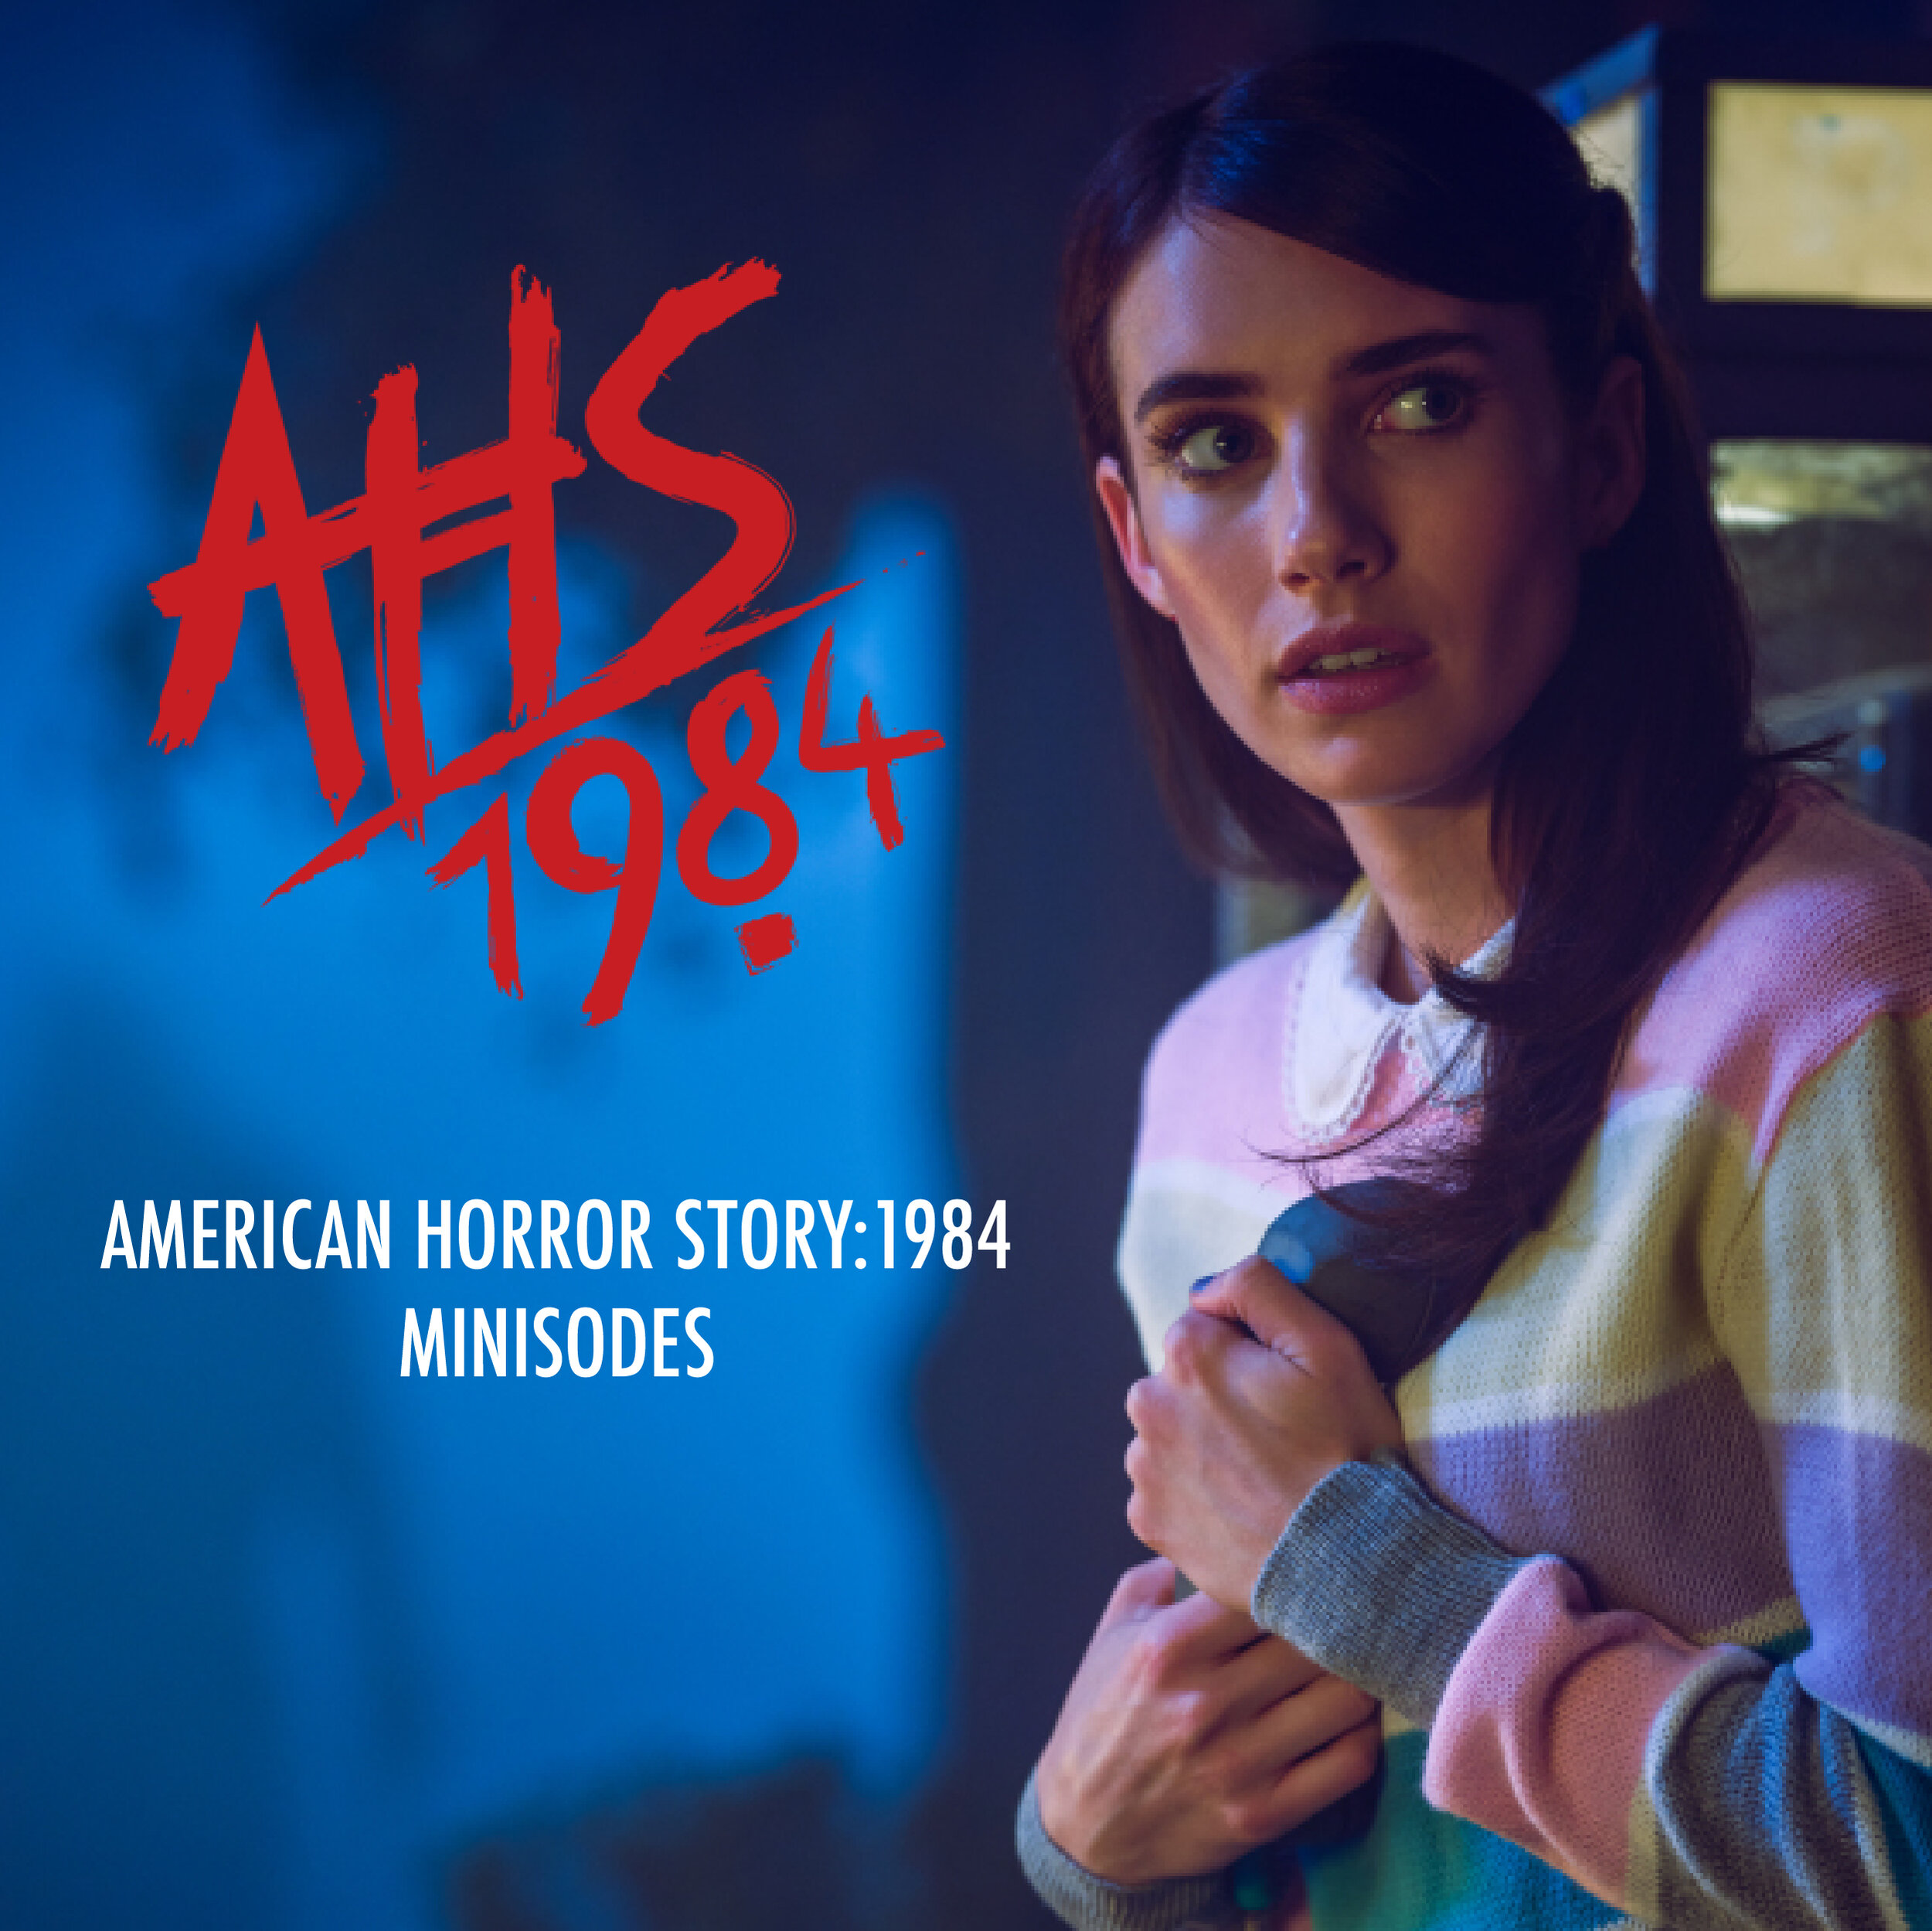 American Horror Story 1984 Minisodes